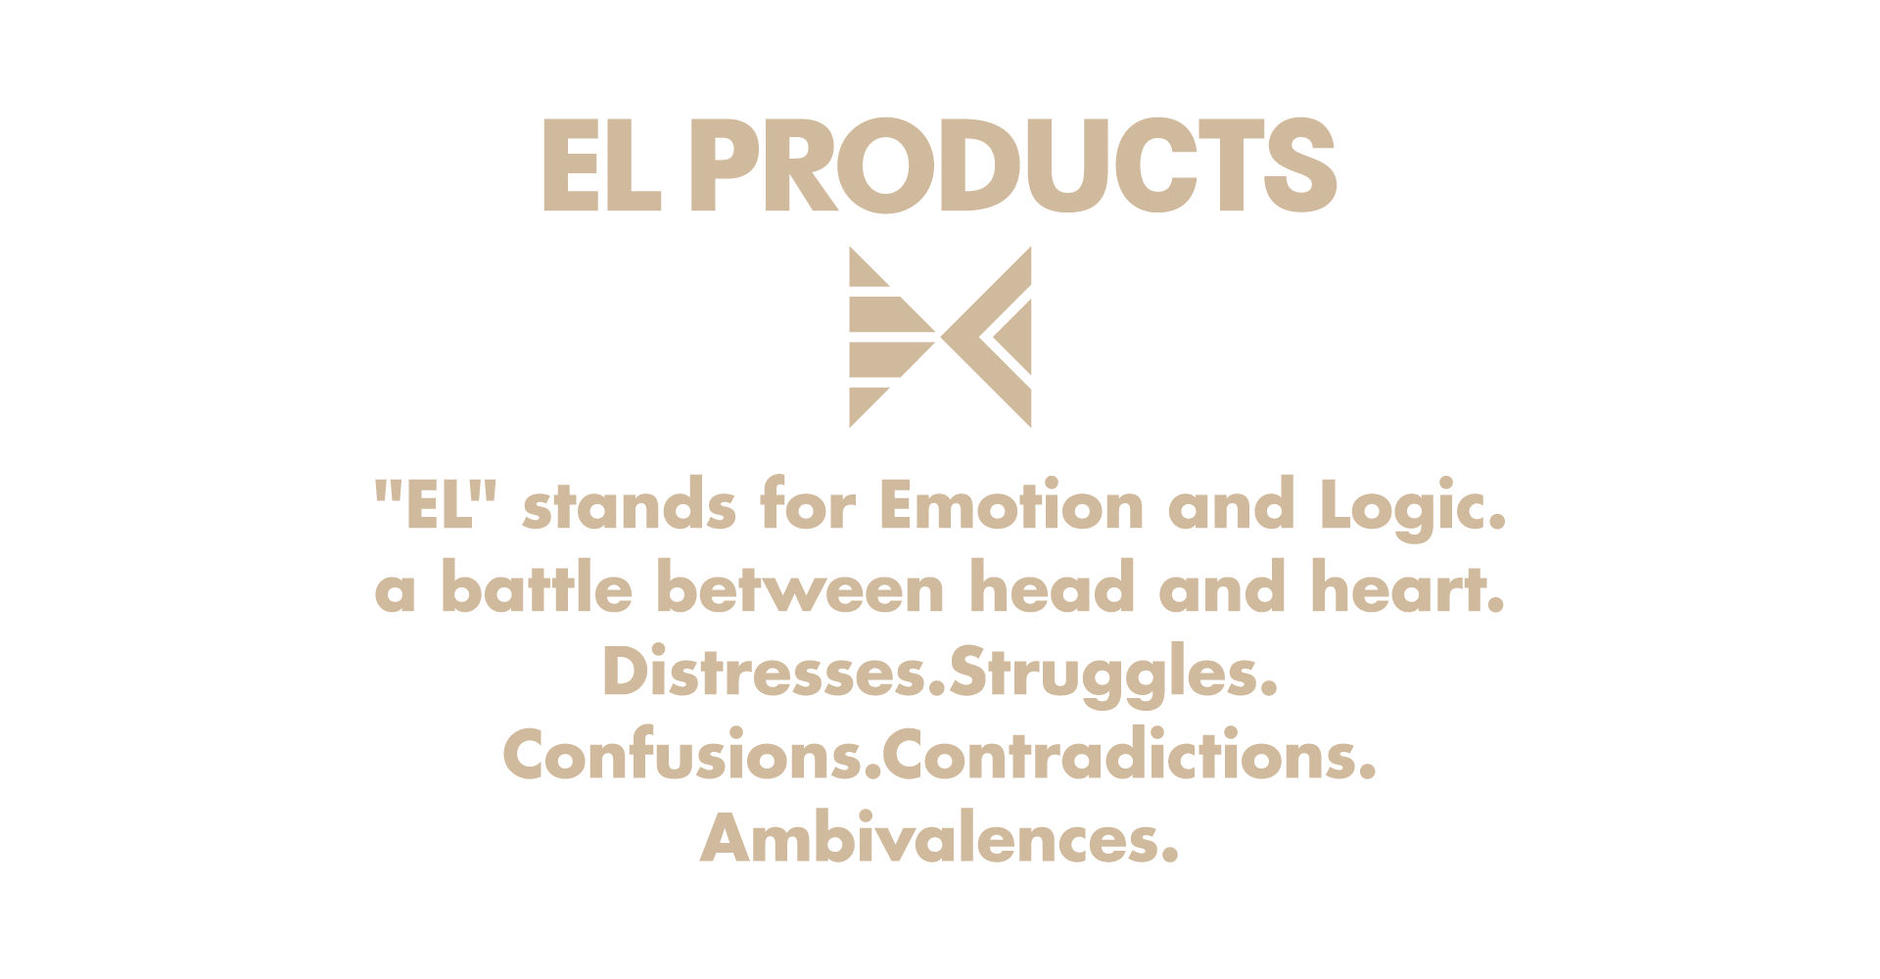 EL PRODUCTS